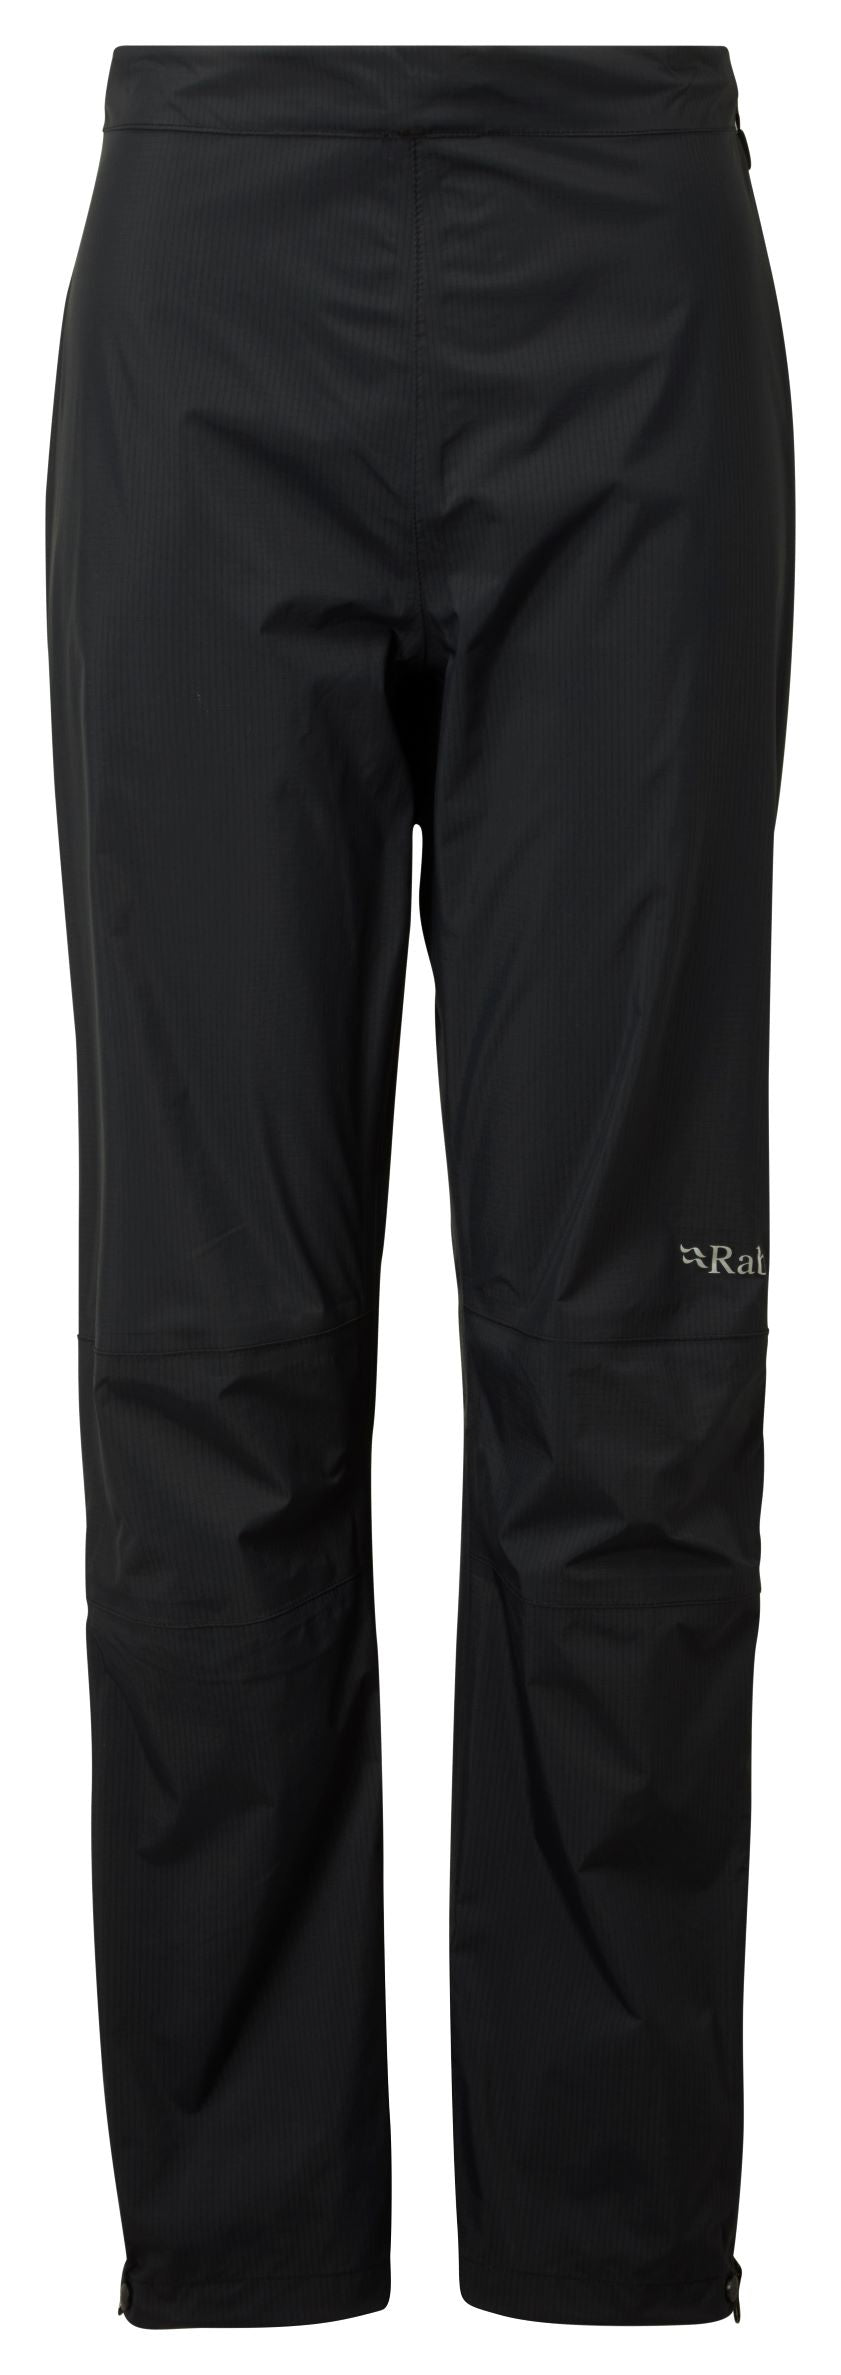 Rab Downpour Plus Pants Womens